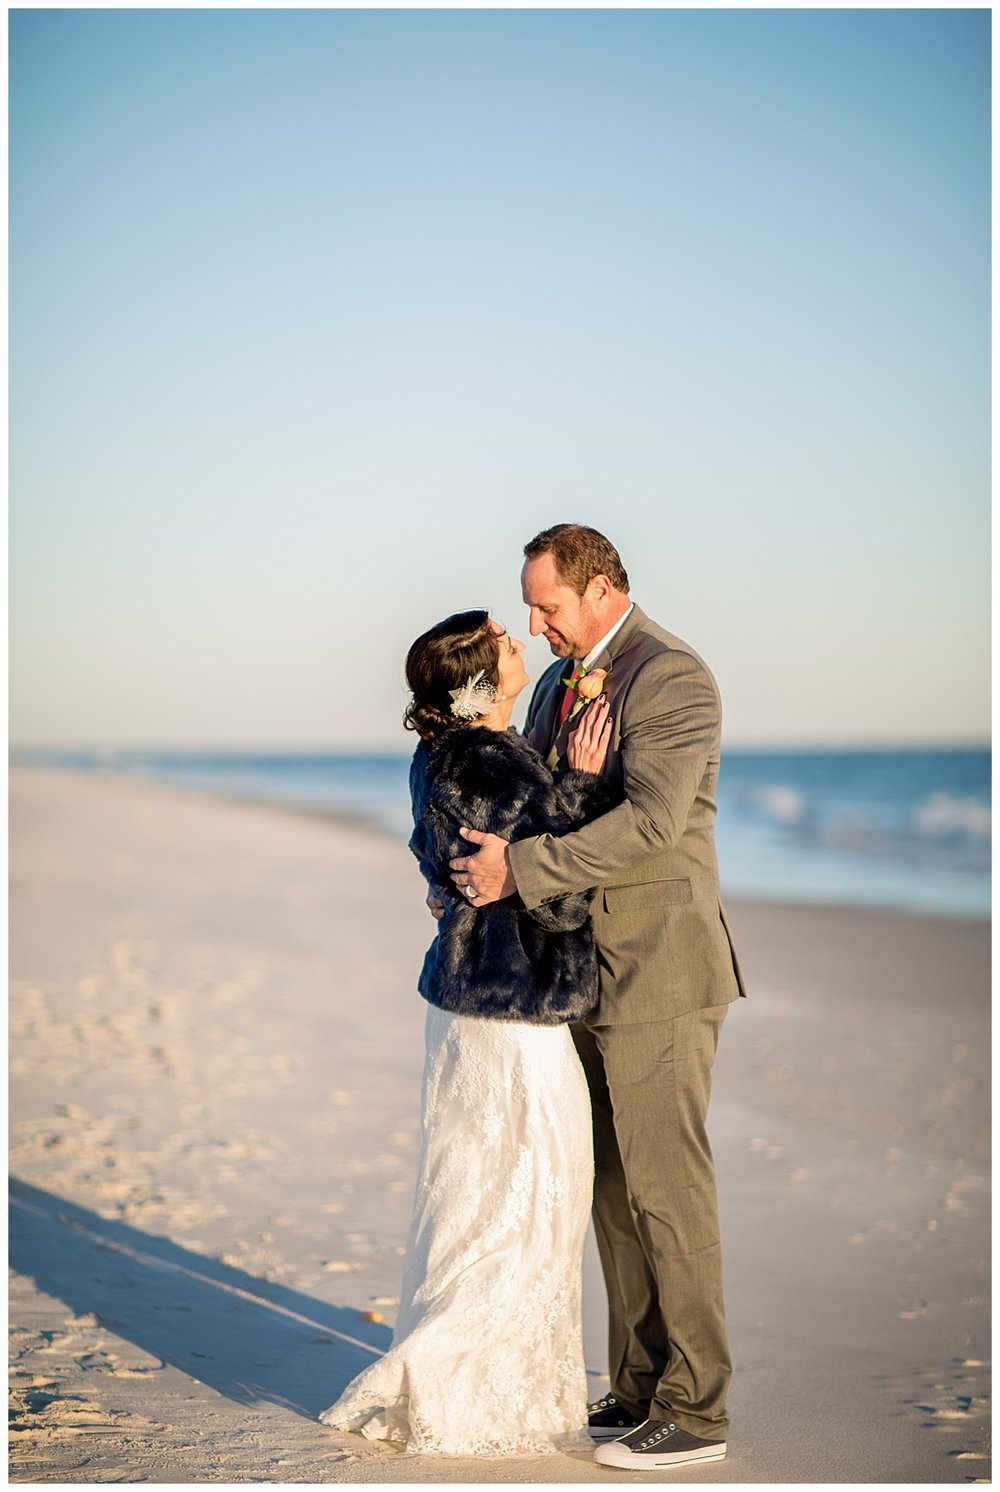 119 Romantic Wedding on the beach .jpg